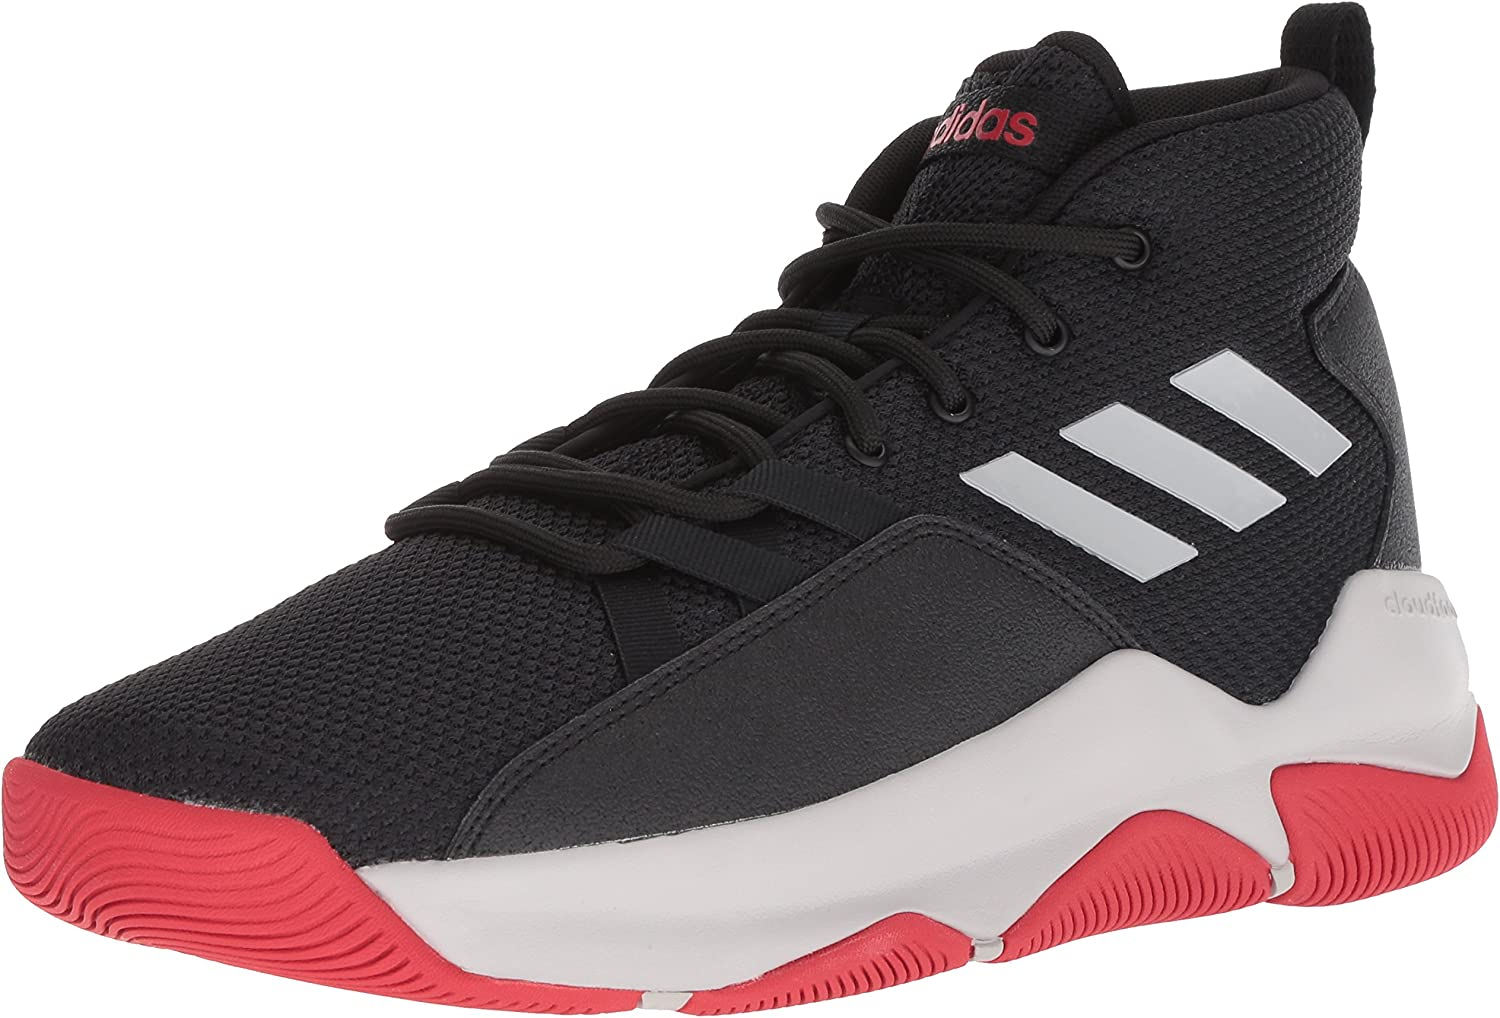 Adidas Men's Streetfire Basketball shoes